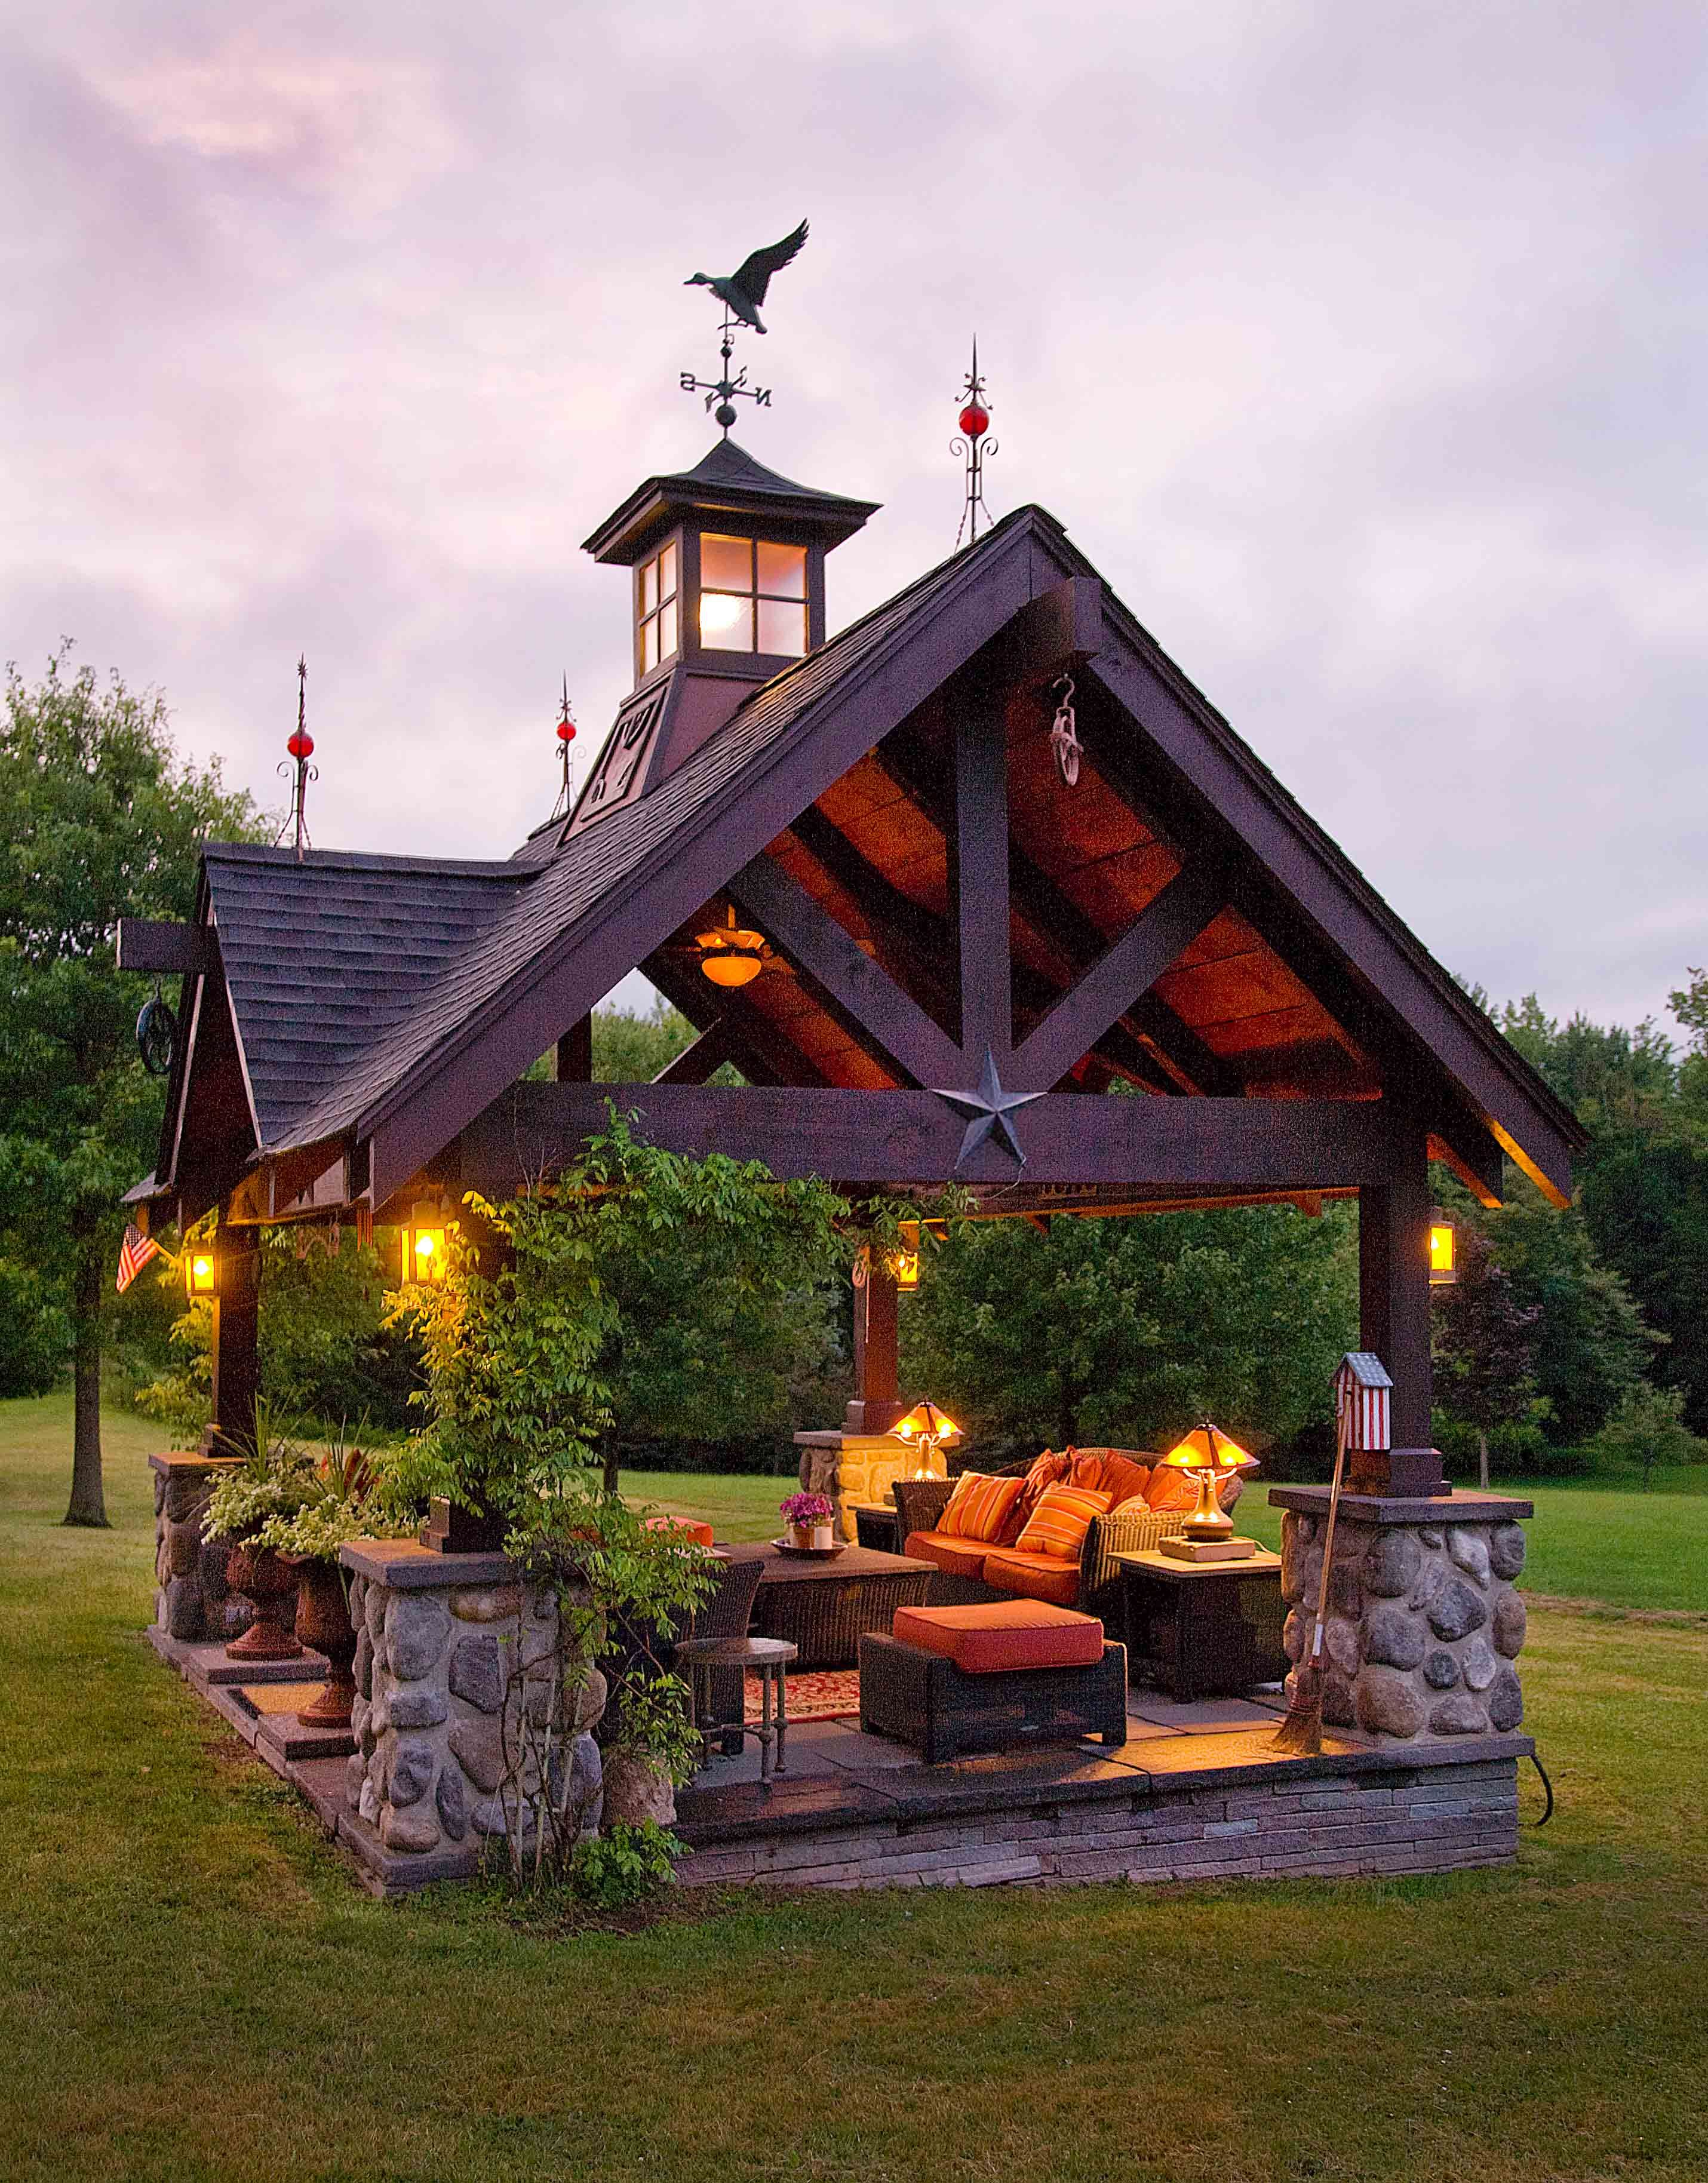 exterior of cabin use of stones a la craftsman style for the